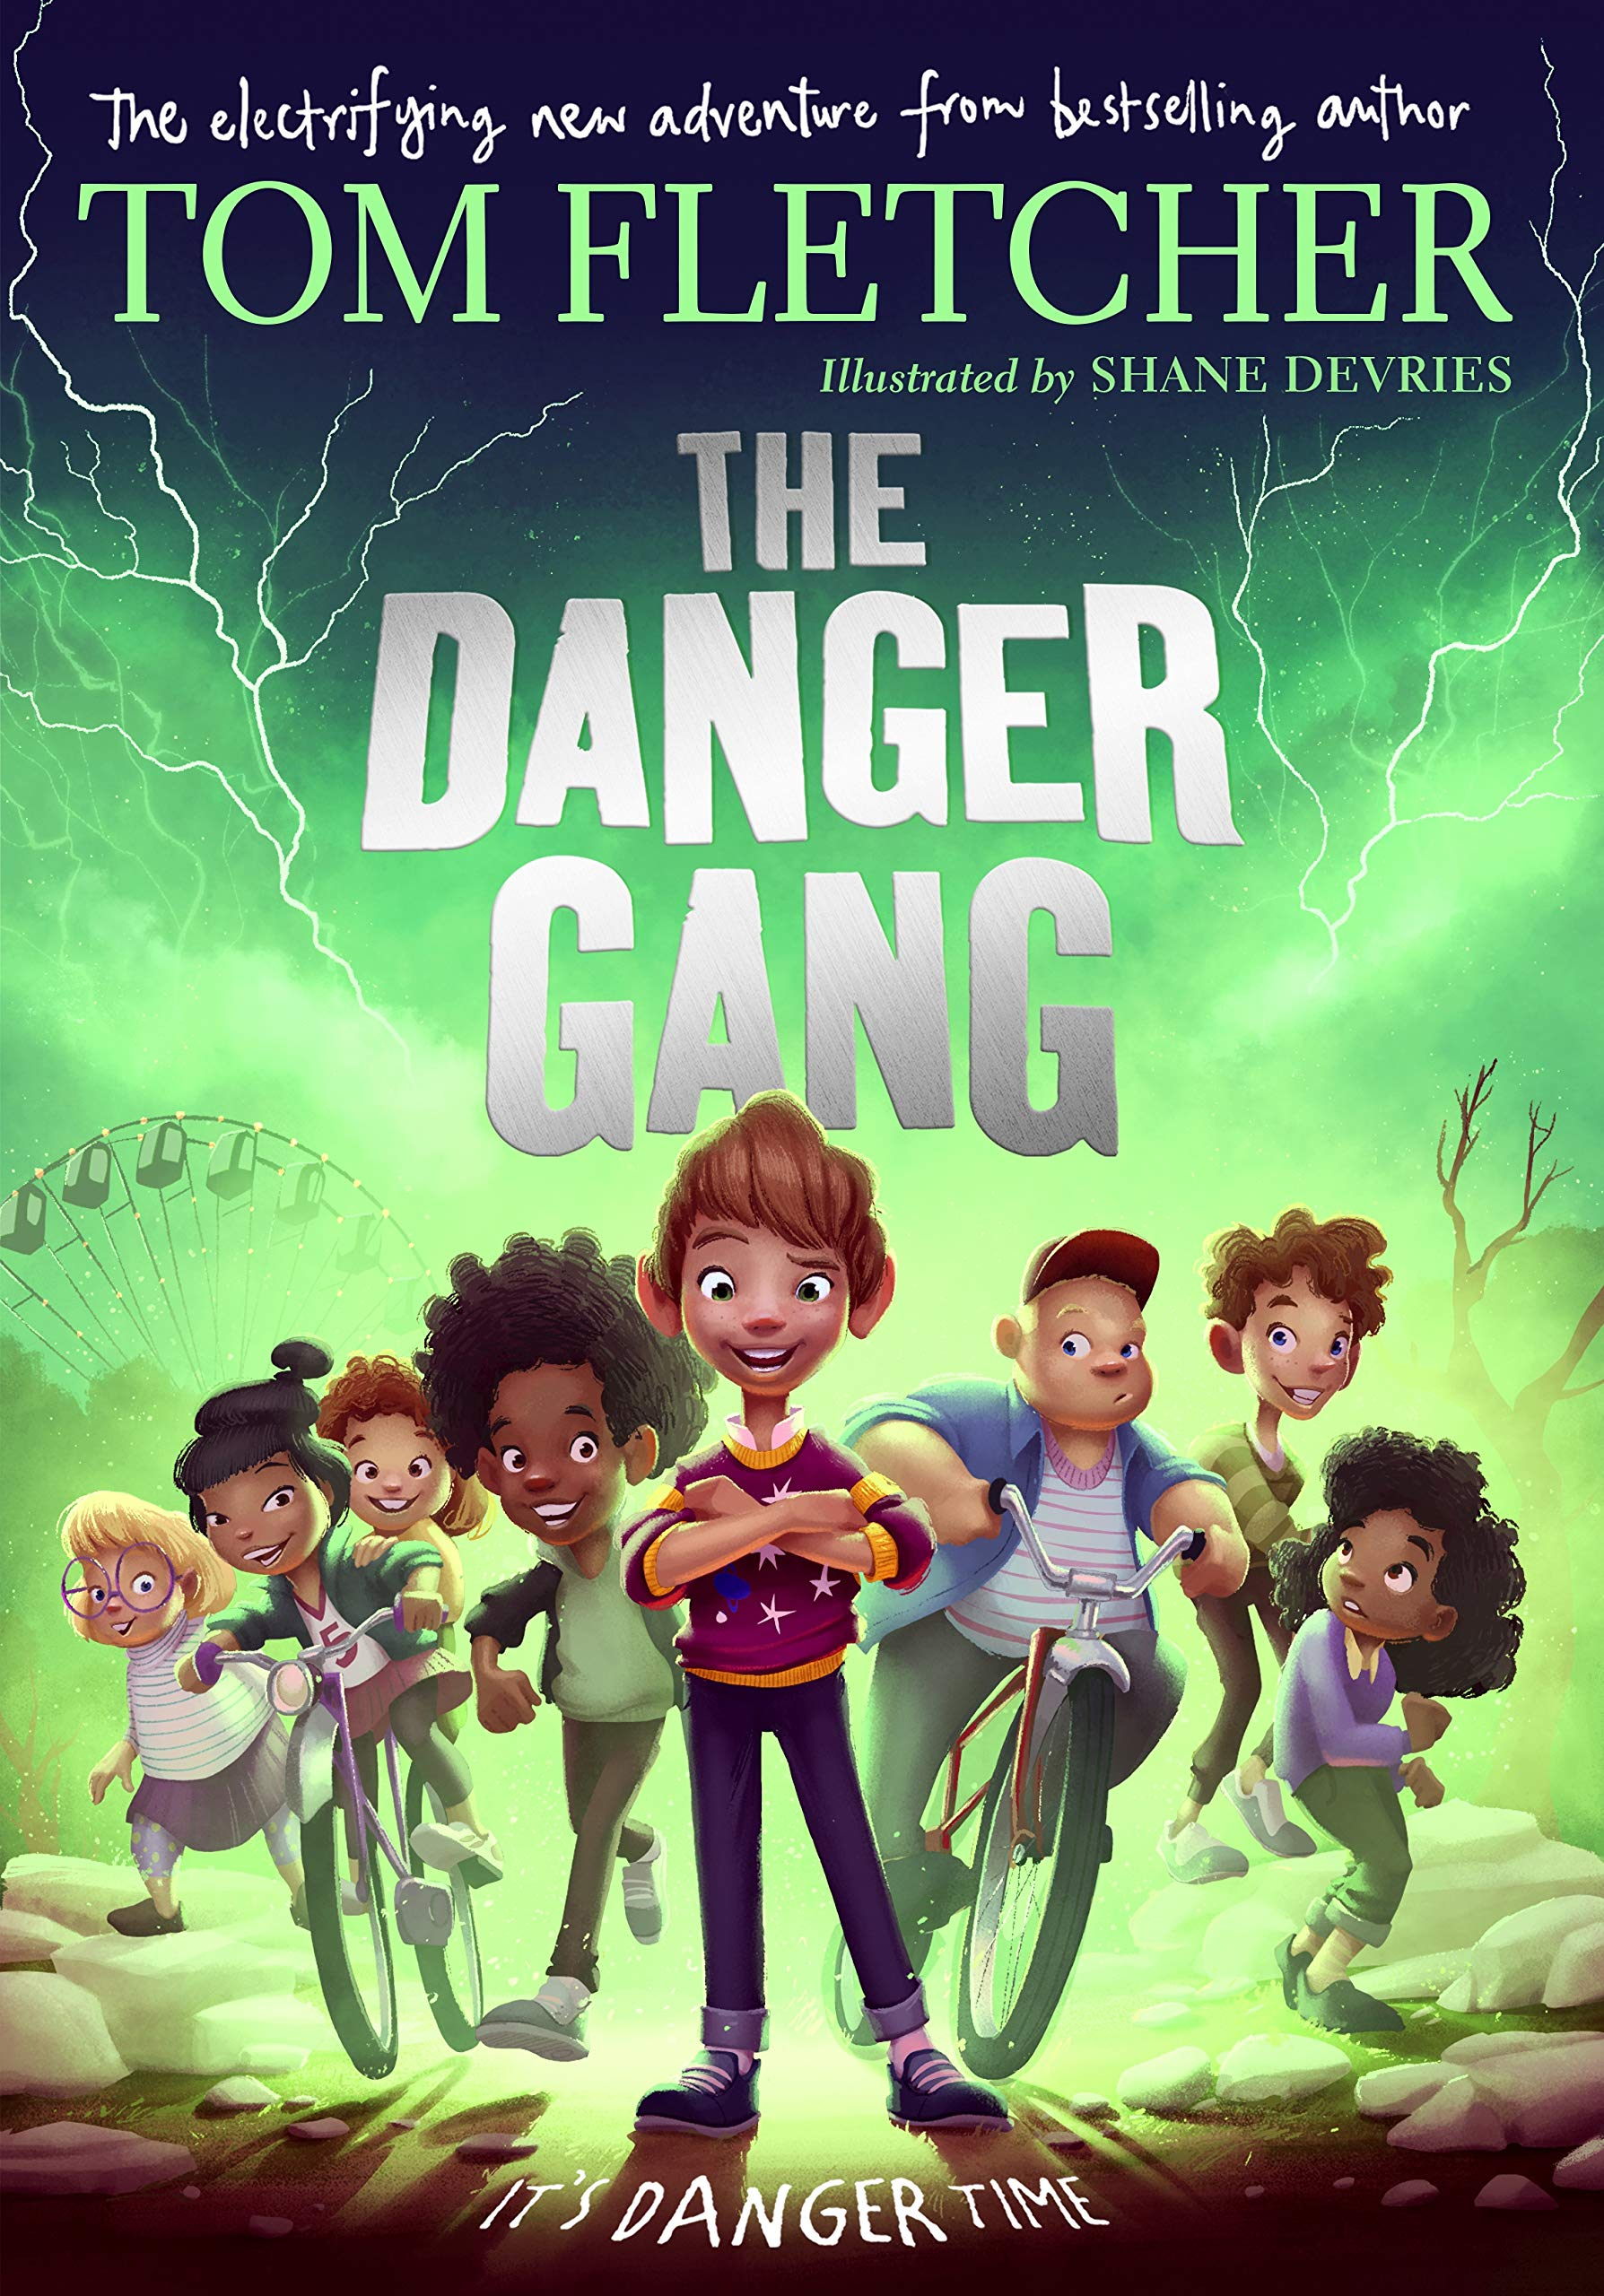 Image result for the danger gang character